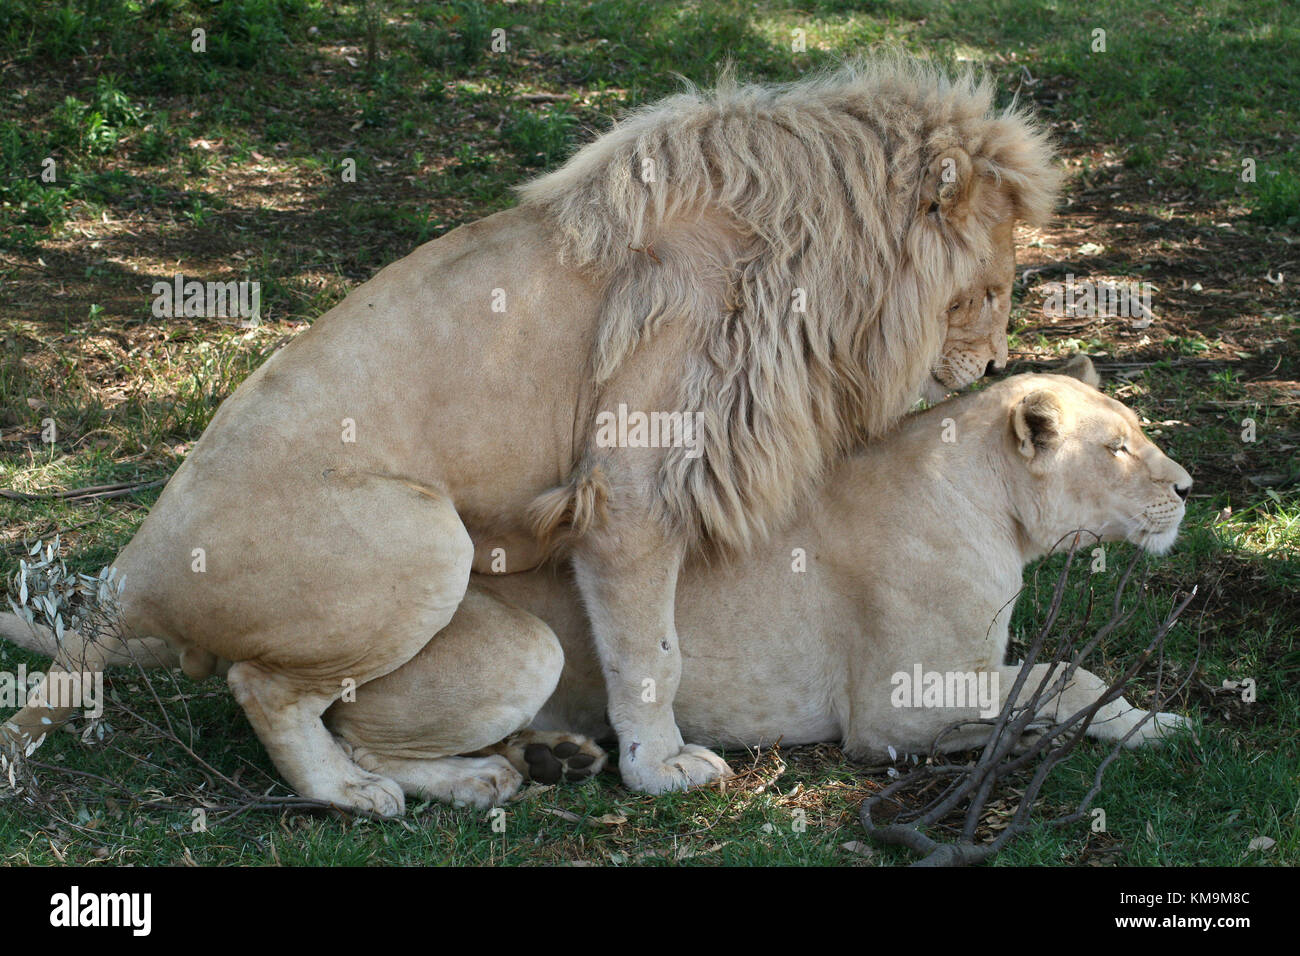 Lion Park, white lion and lioness mating, Panthera leo krugeri - Stock Image